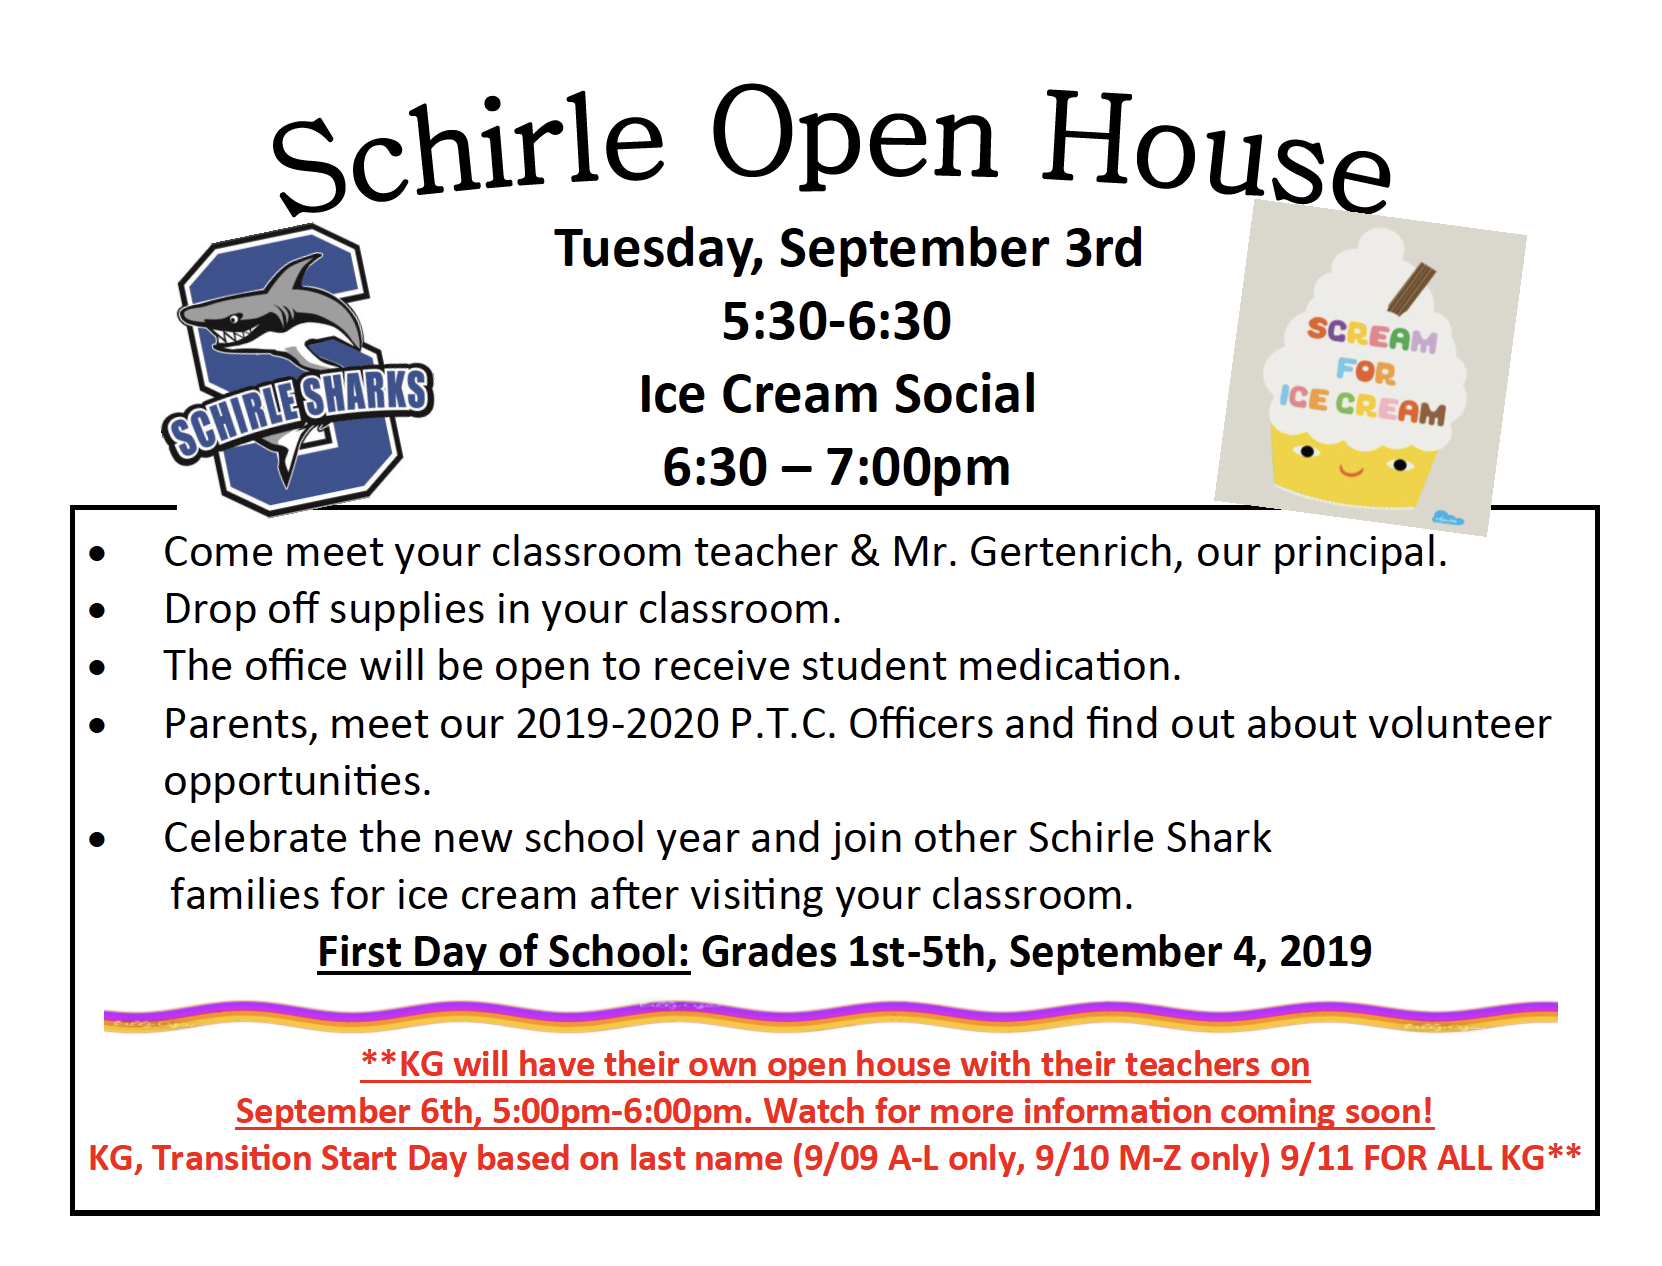 Open House and Ice Cream Social